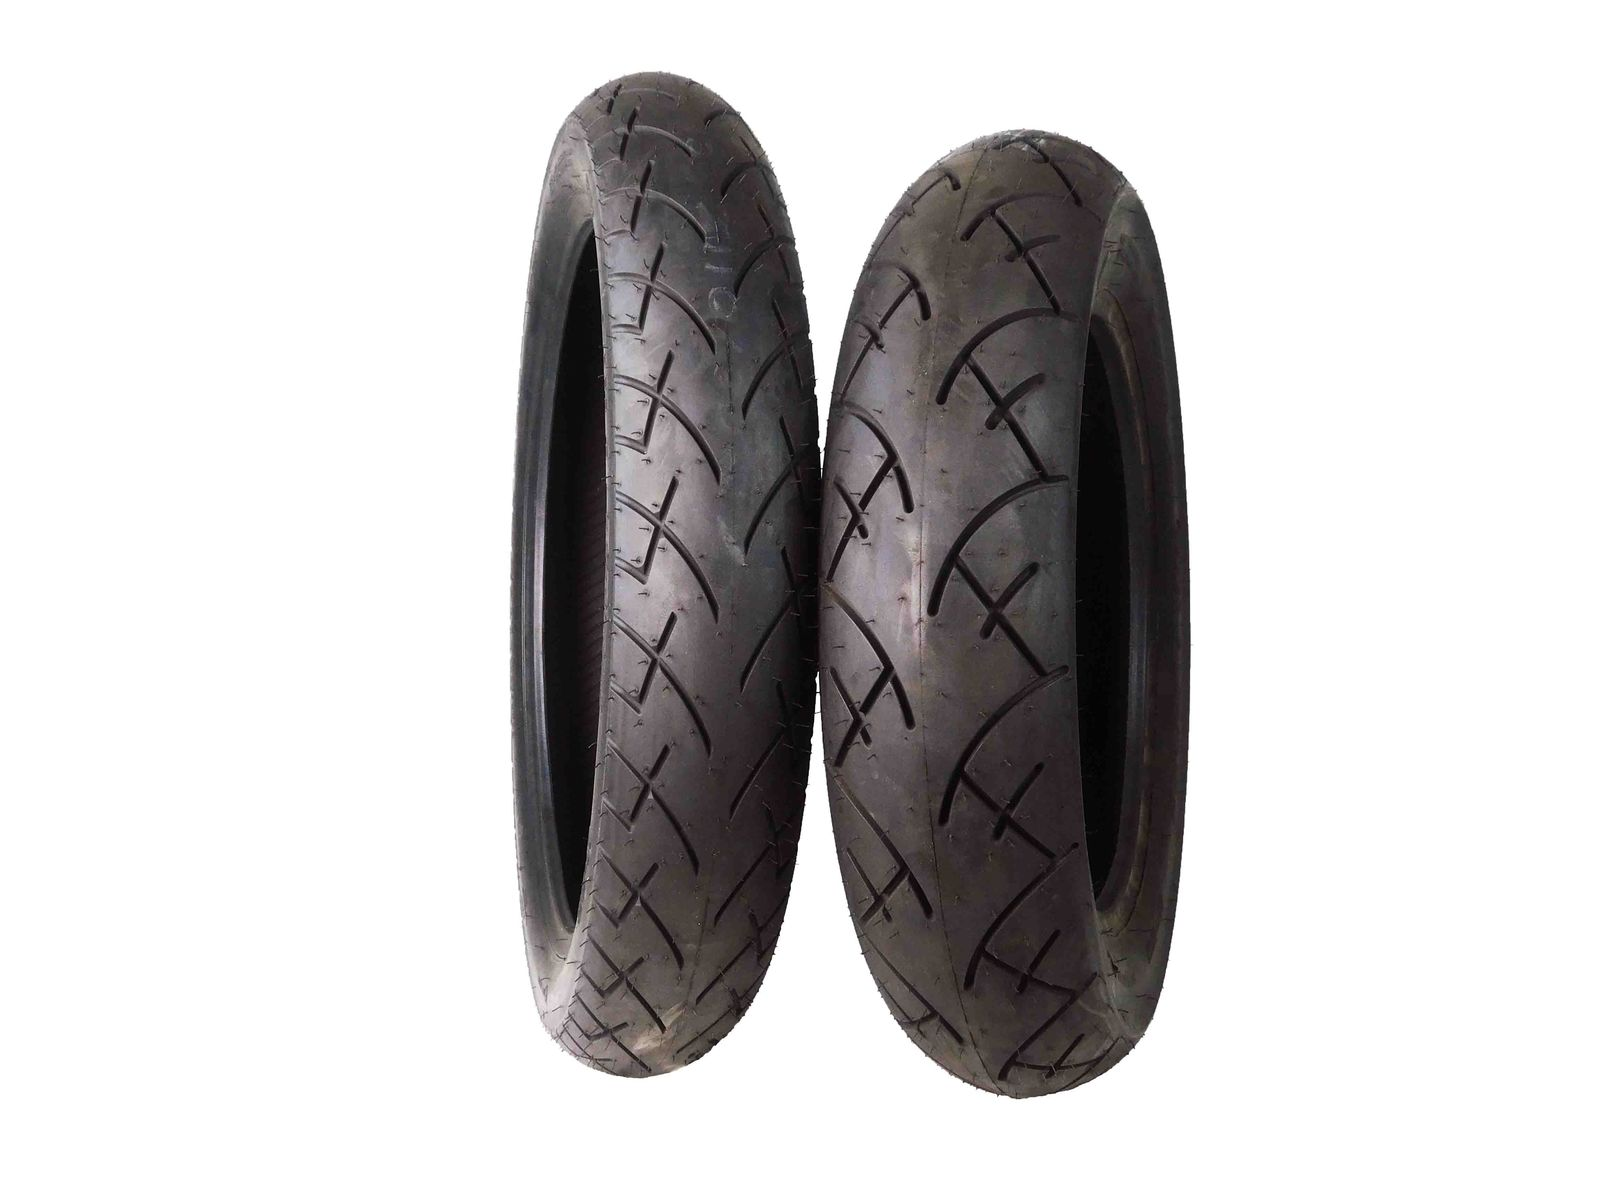 Full-Bore-110-90-19-Front-140-90-15-Rear-Set-Cruiser-Motorcycle-Tires-image-1